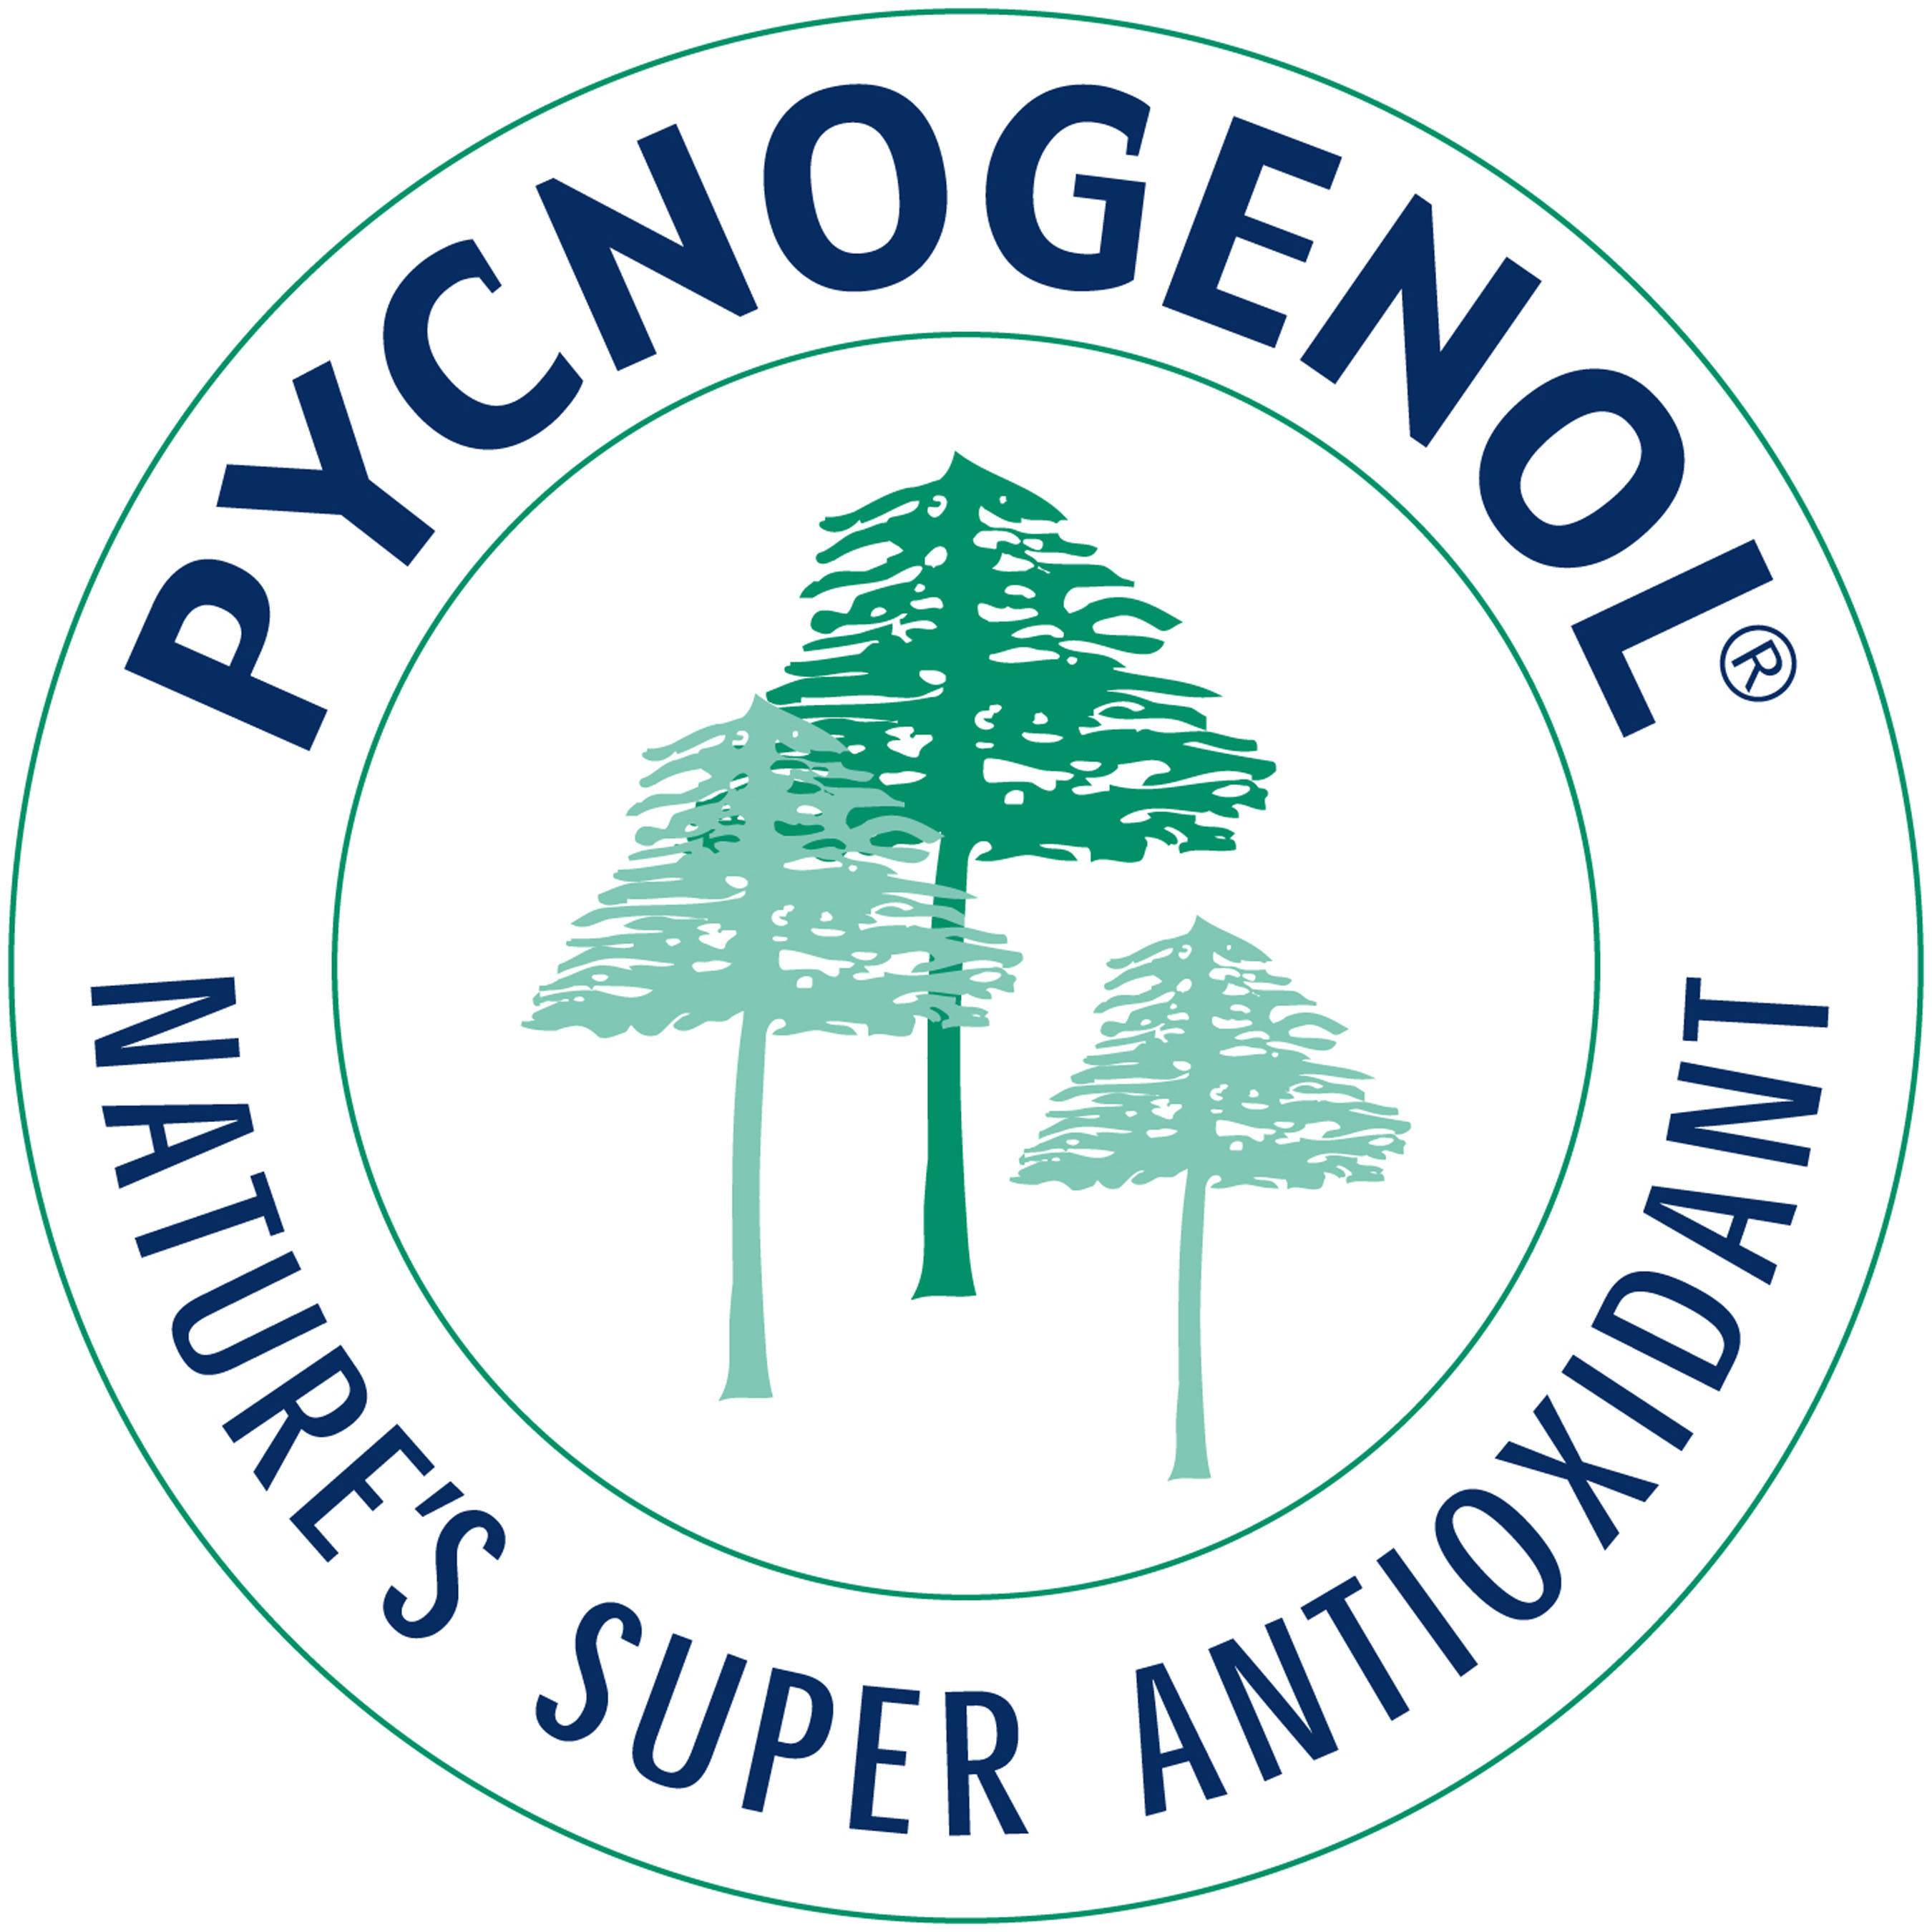 Pycnogenol(R) is a natural plant extract originating from the bark of the maritime pine that grows along the coast of southwest France and is found to contain a unique combination of procyanidins, bioflavonoids and organic acids, which offer extensive natural health benefits. (PRNewsFoto/Horphag Research (USA) Inc.) (PRNewsFoto/)